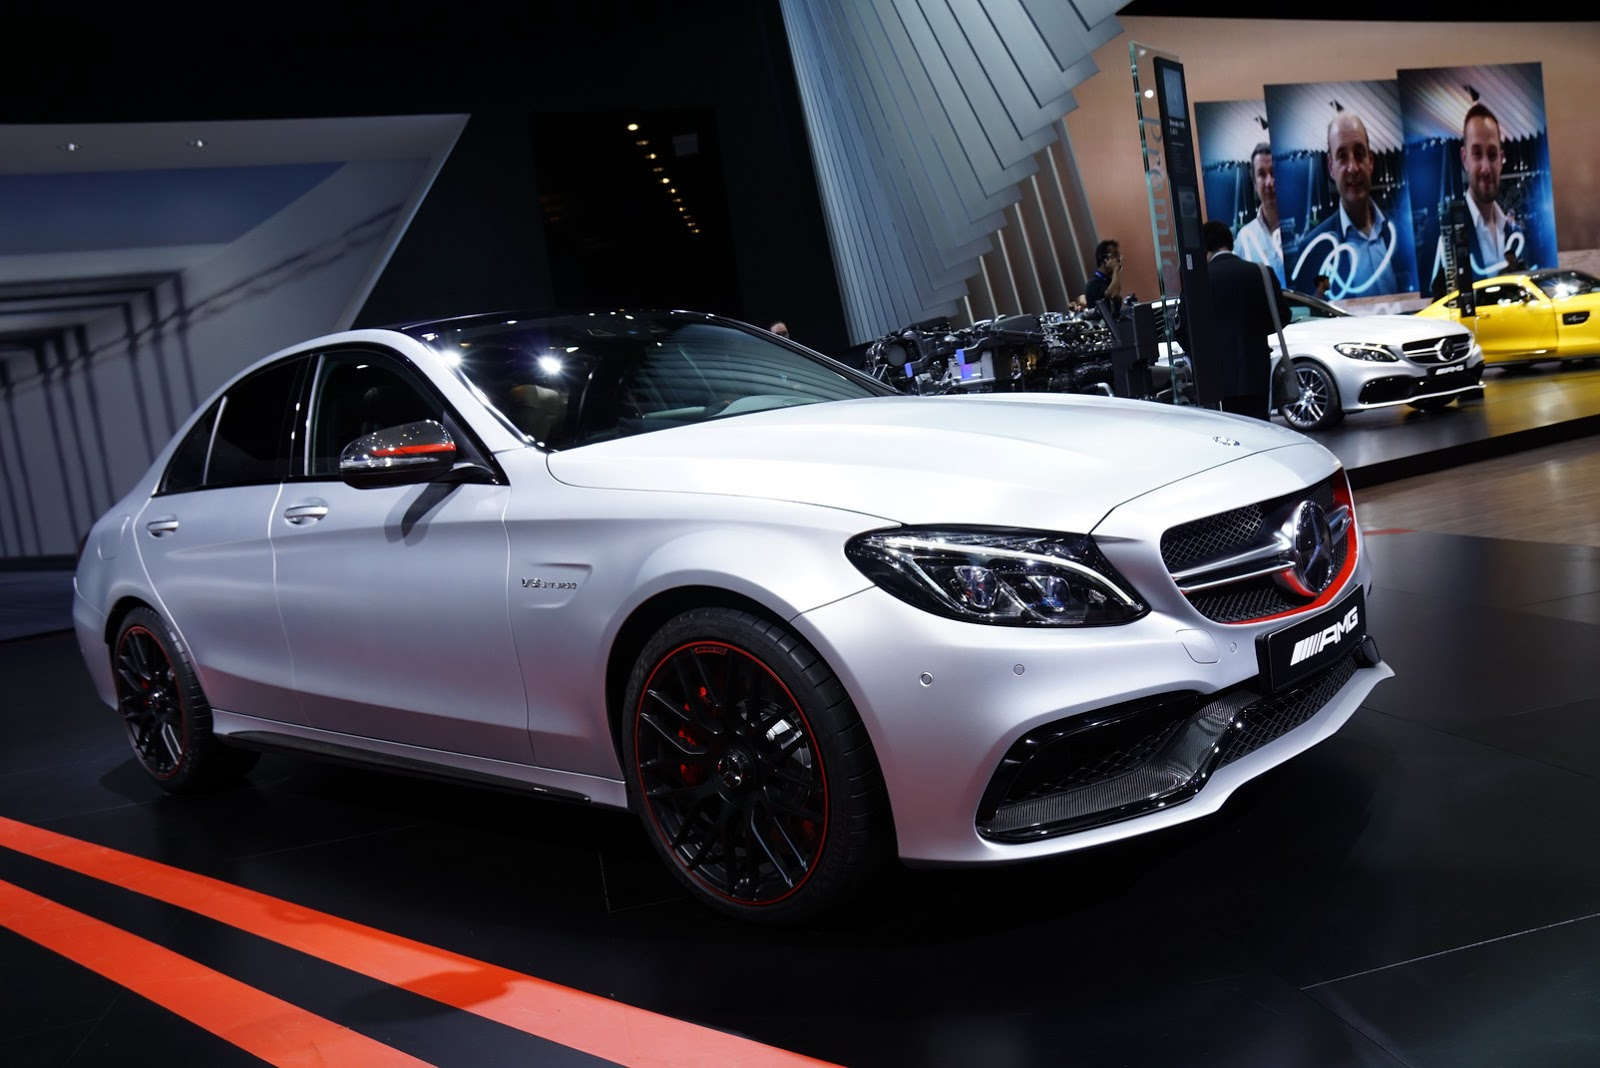 new mercedes amg c63 edition 1 shows its red lace in paris carscoops. Black Bedroom Furniture Sets. Home Design Ideas